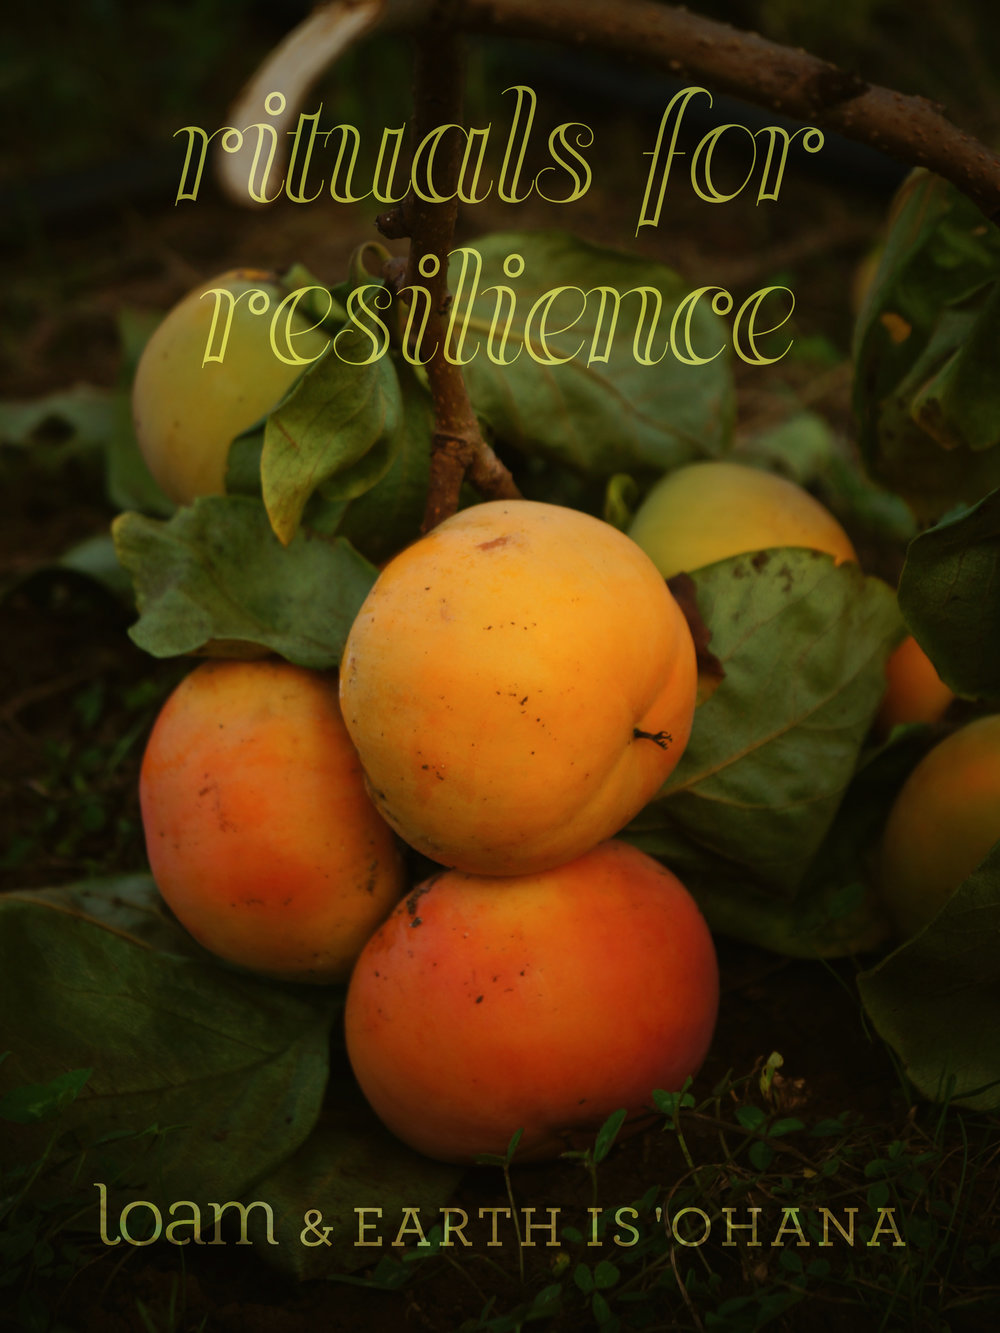 A bough of bright orange stone fruit rests on the dark earth.